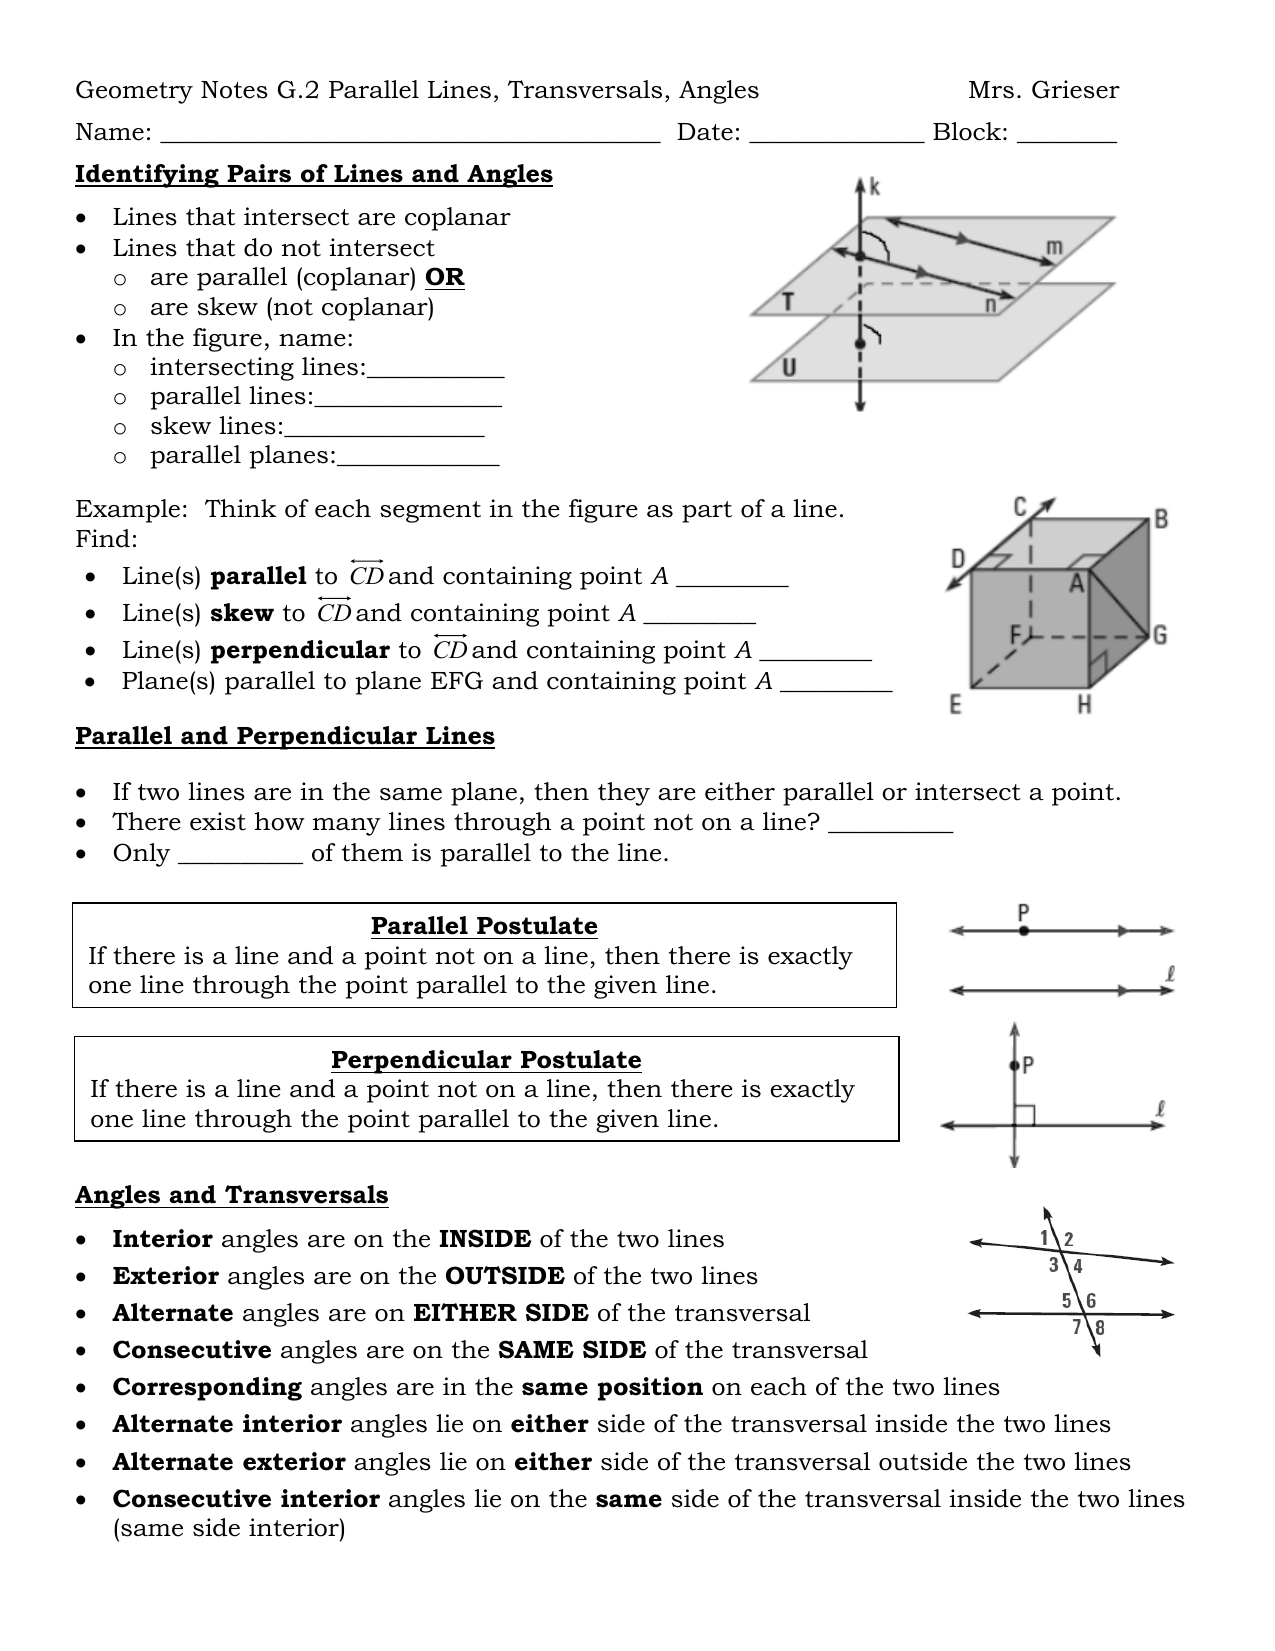 Geometry Notes G 2 Parallel Lines Transversals Angles Mrs